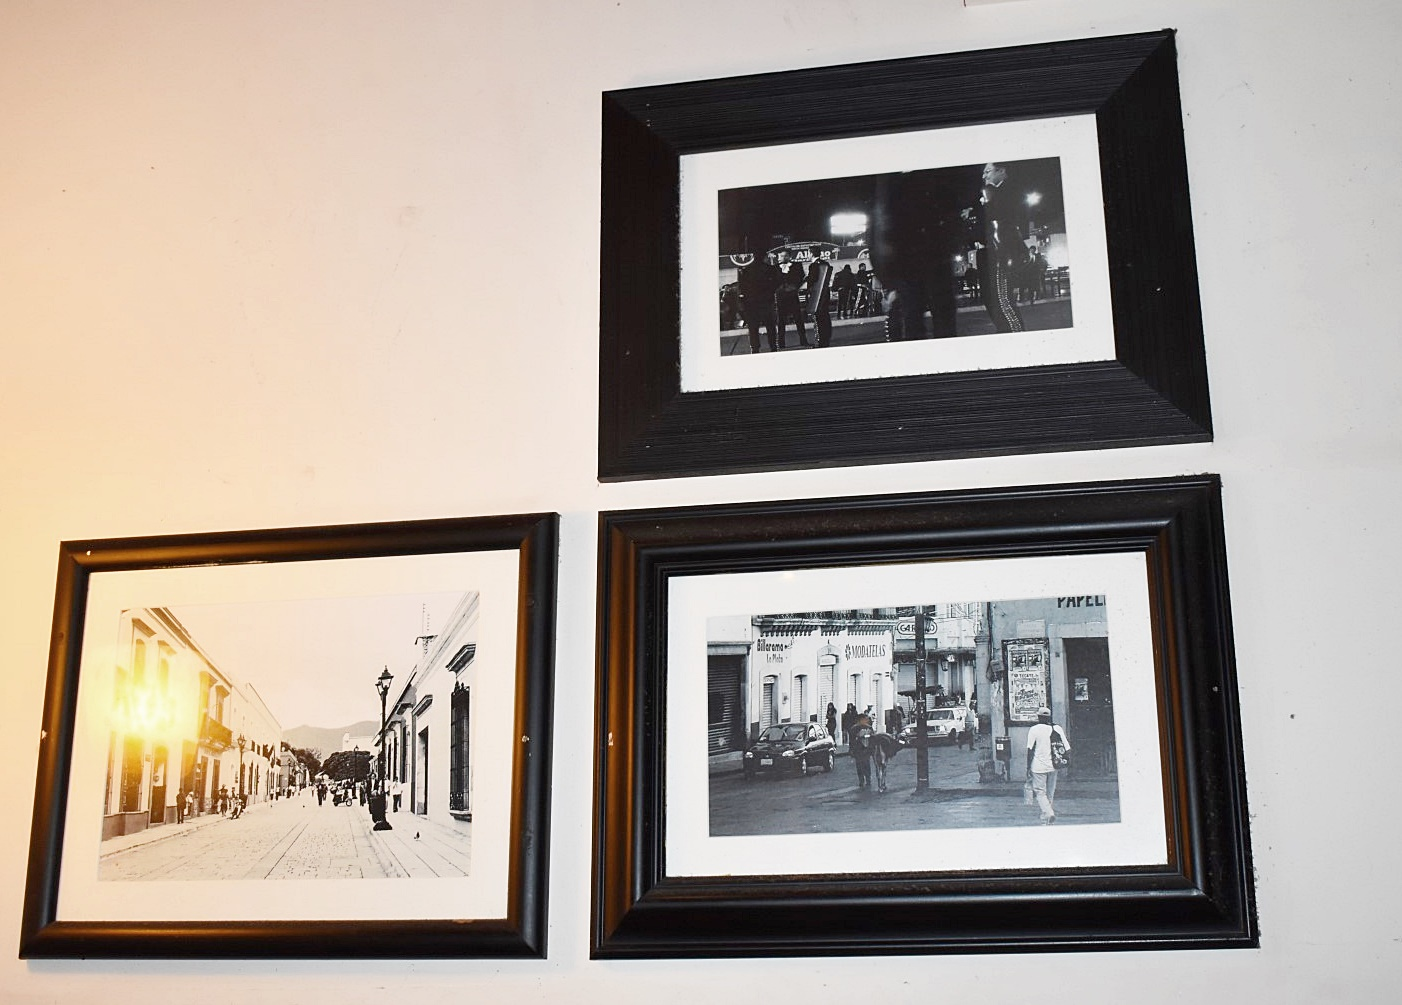 Lot 1338 - 30 x Assorted Pictures in Black Frames - Pictures Will Be Picked at Random From The Selection